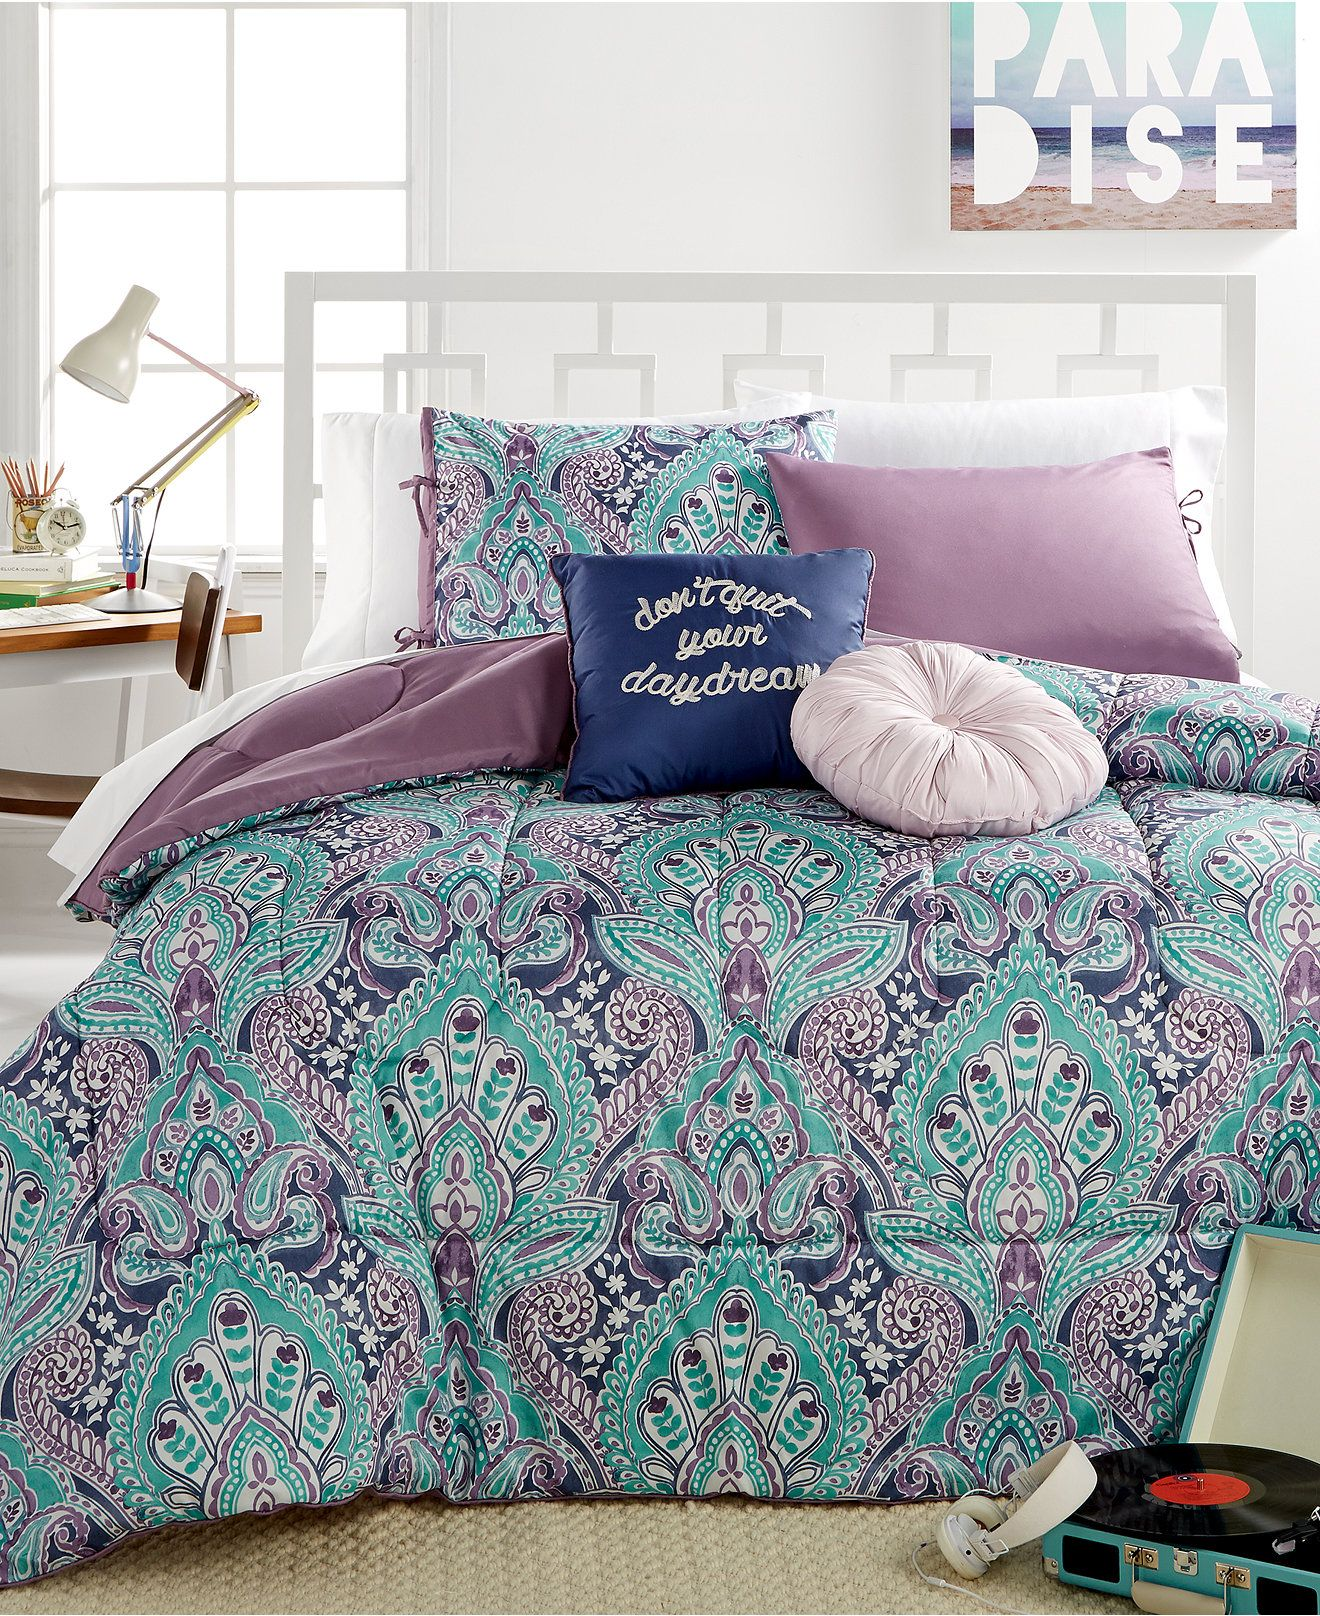 ava blossom 5-pc. comforter sets - bed in a bag - bed & bath